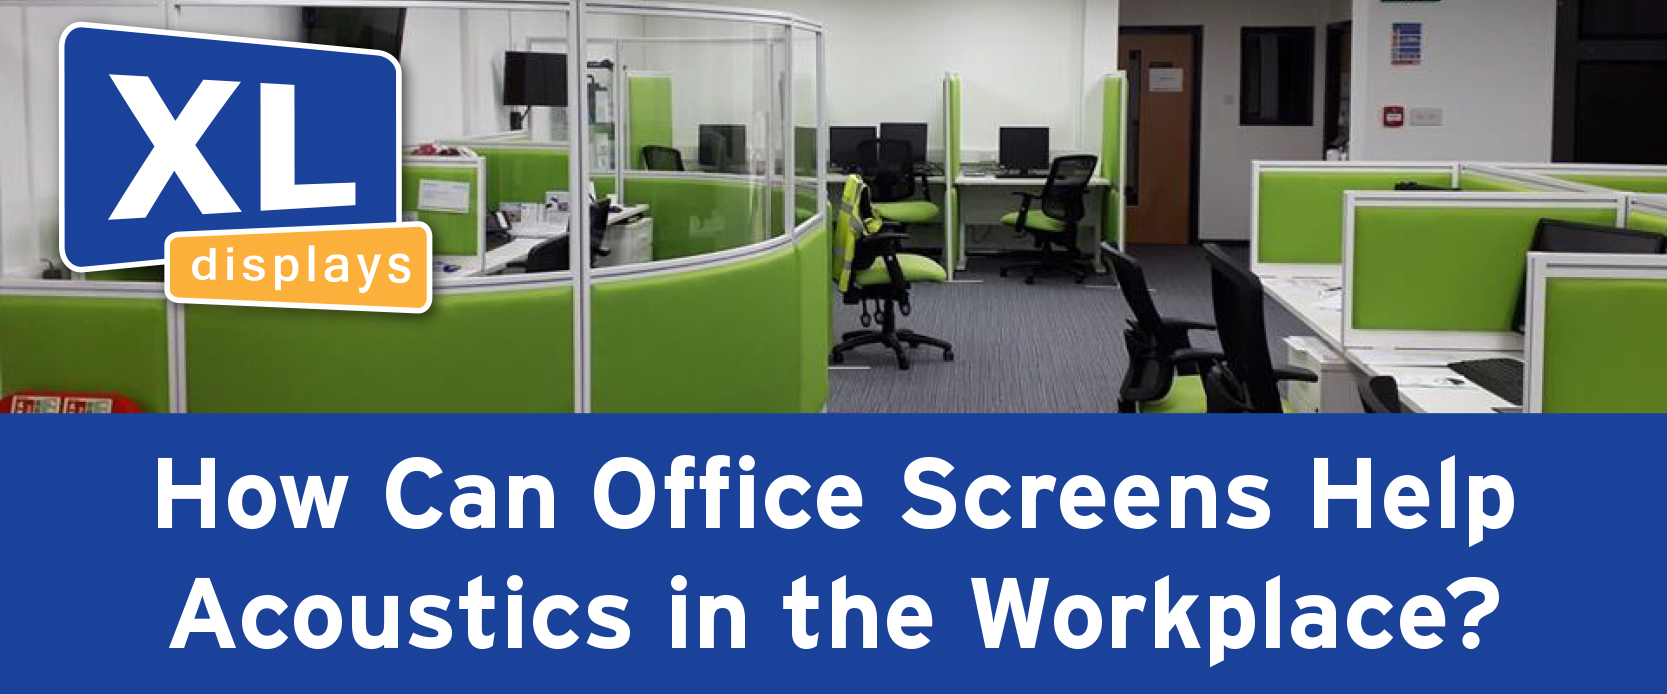 How Can Office Screens Help Acoustics in the Workplace?